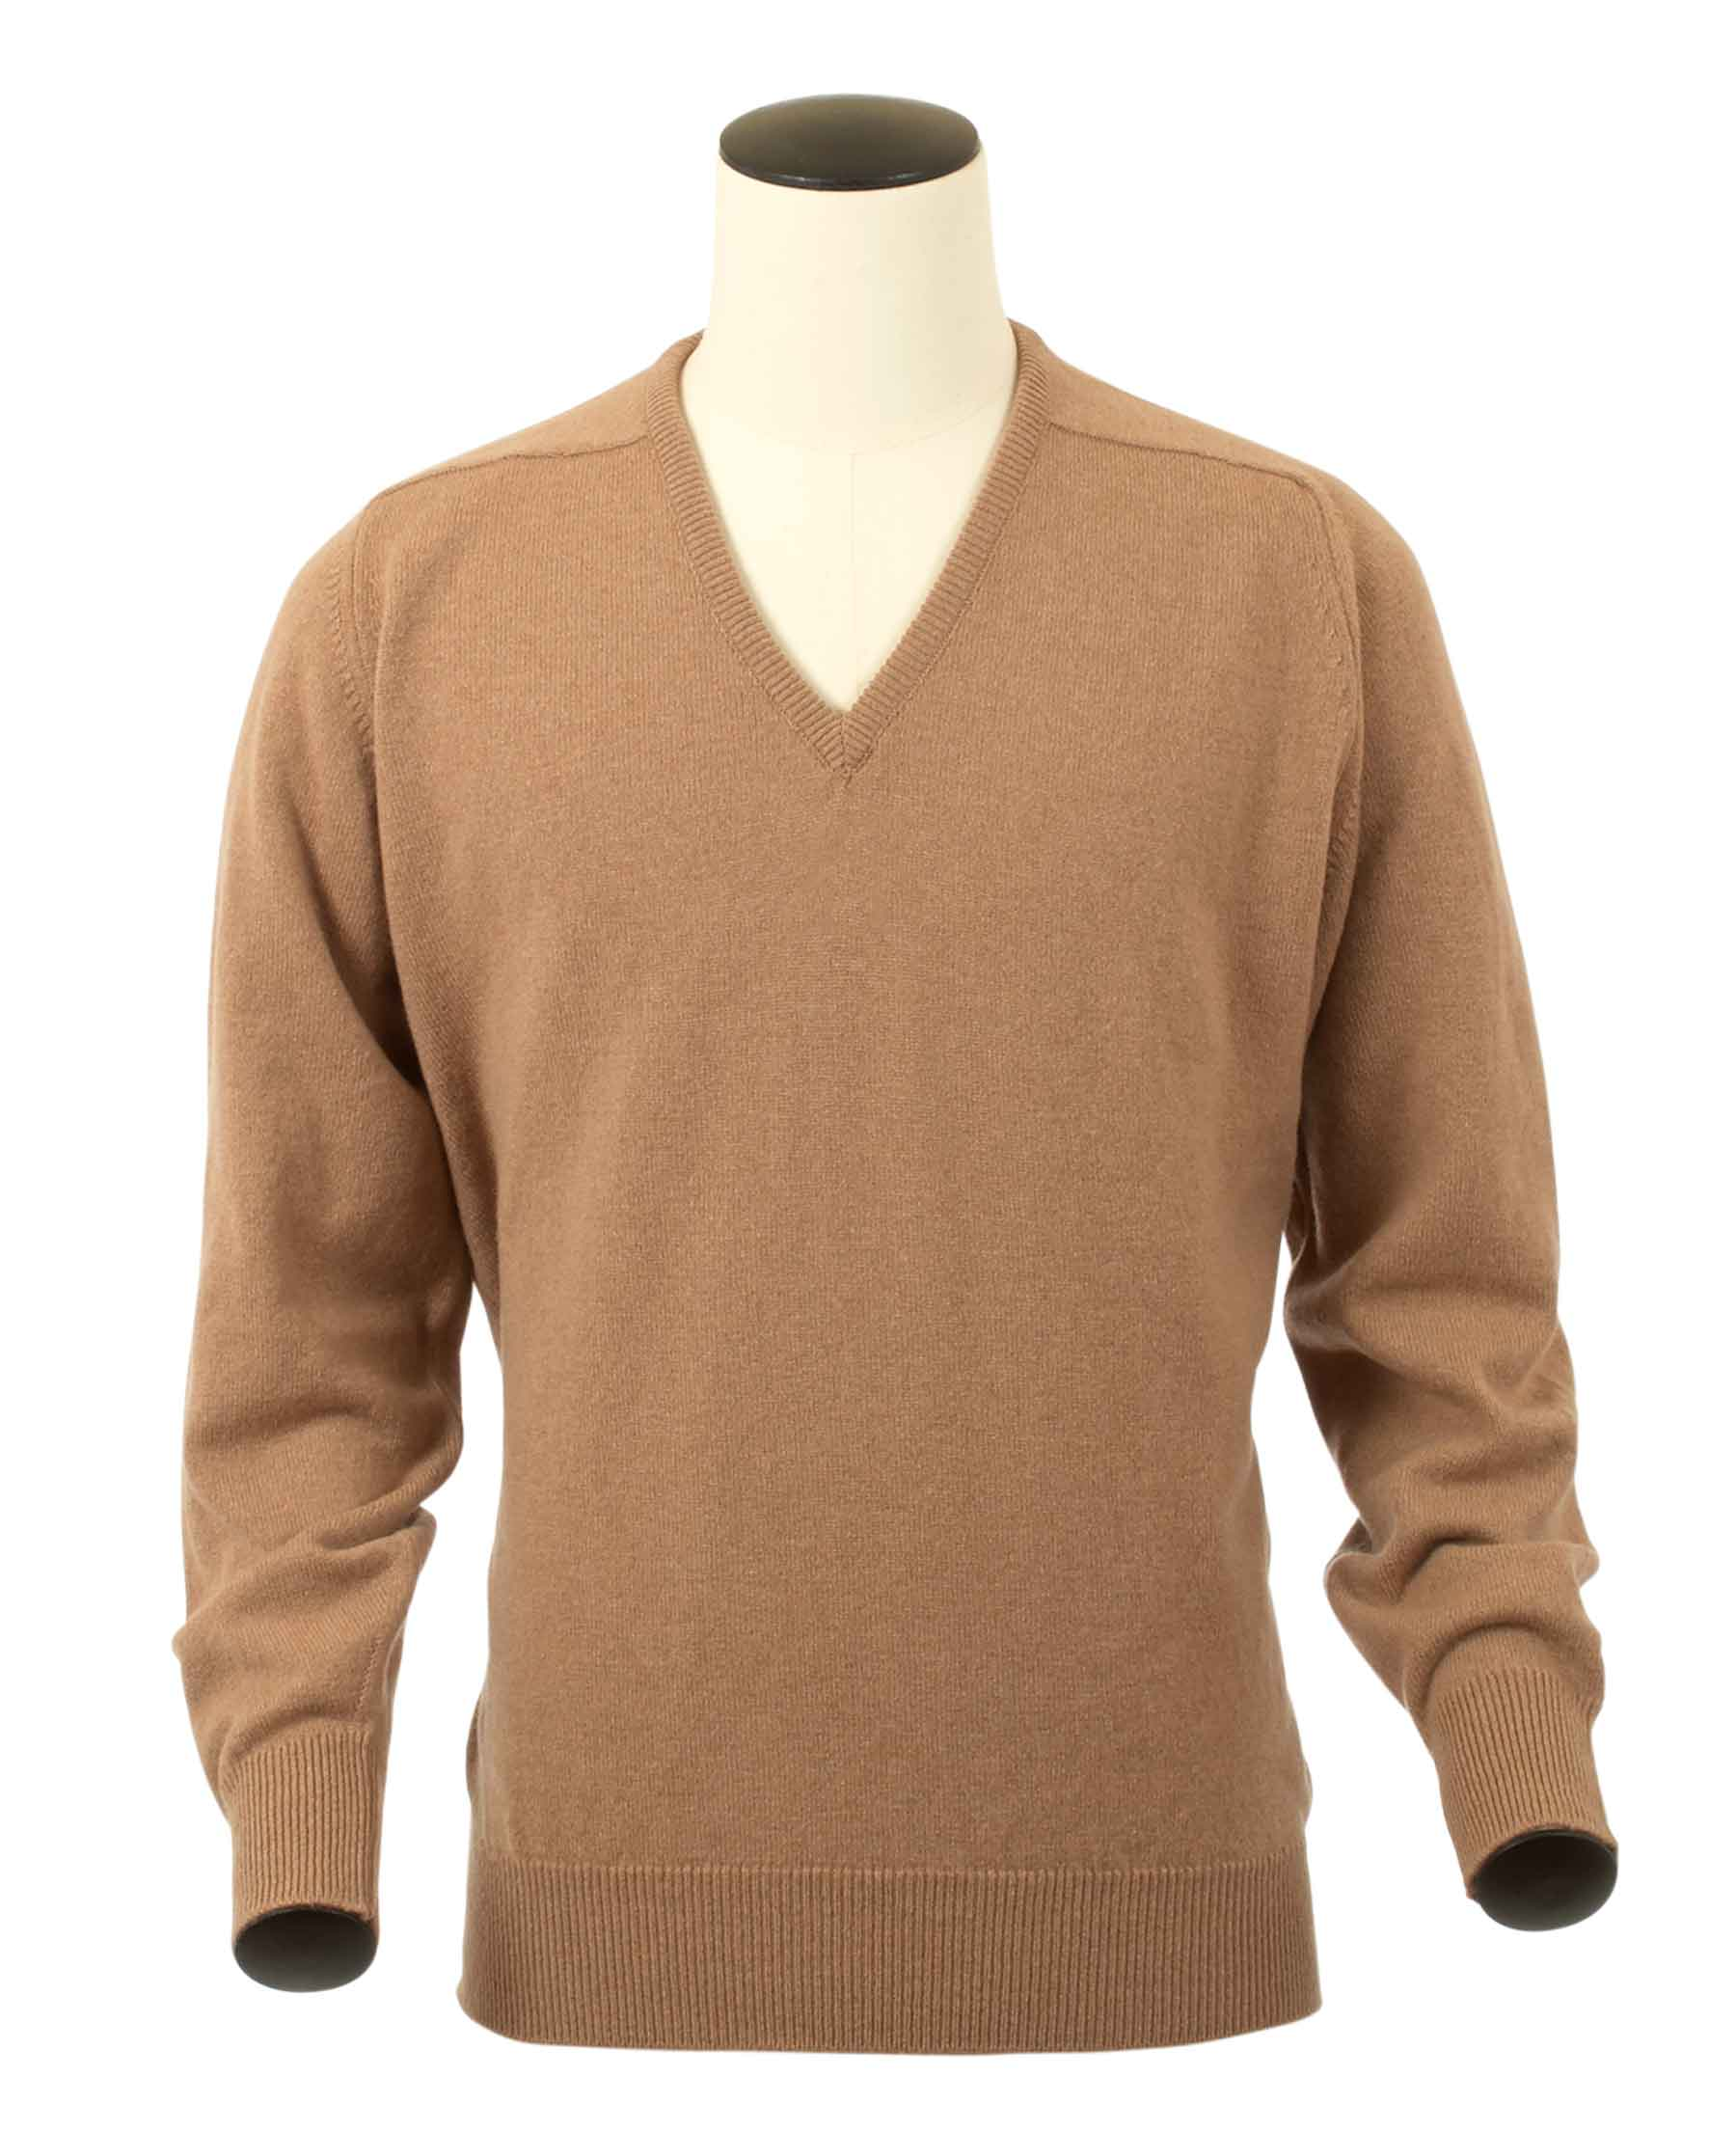 Scott, Couleur Camel, Pull col V en 100% lambswool - Vêtements laine geelong